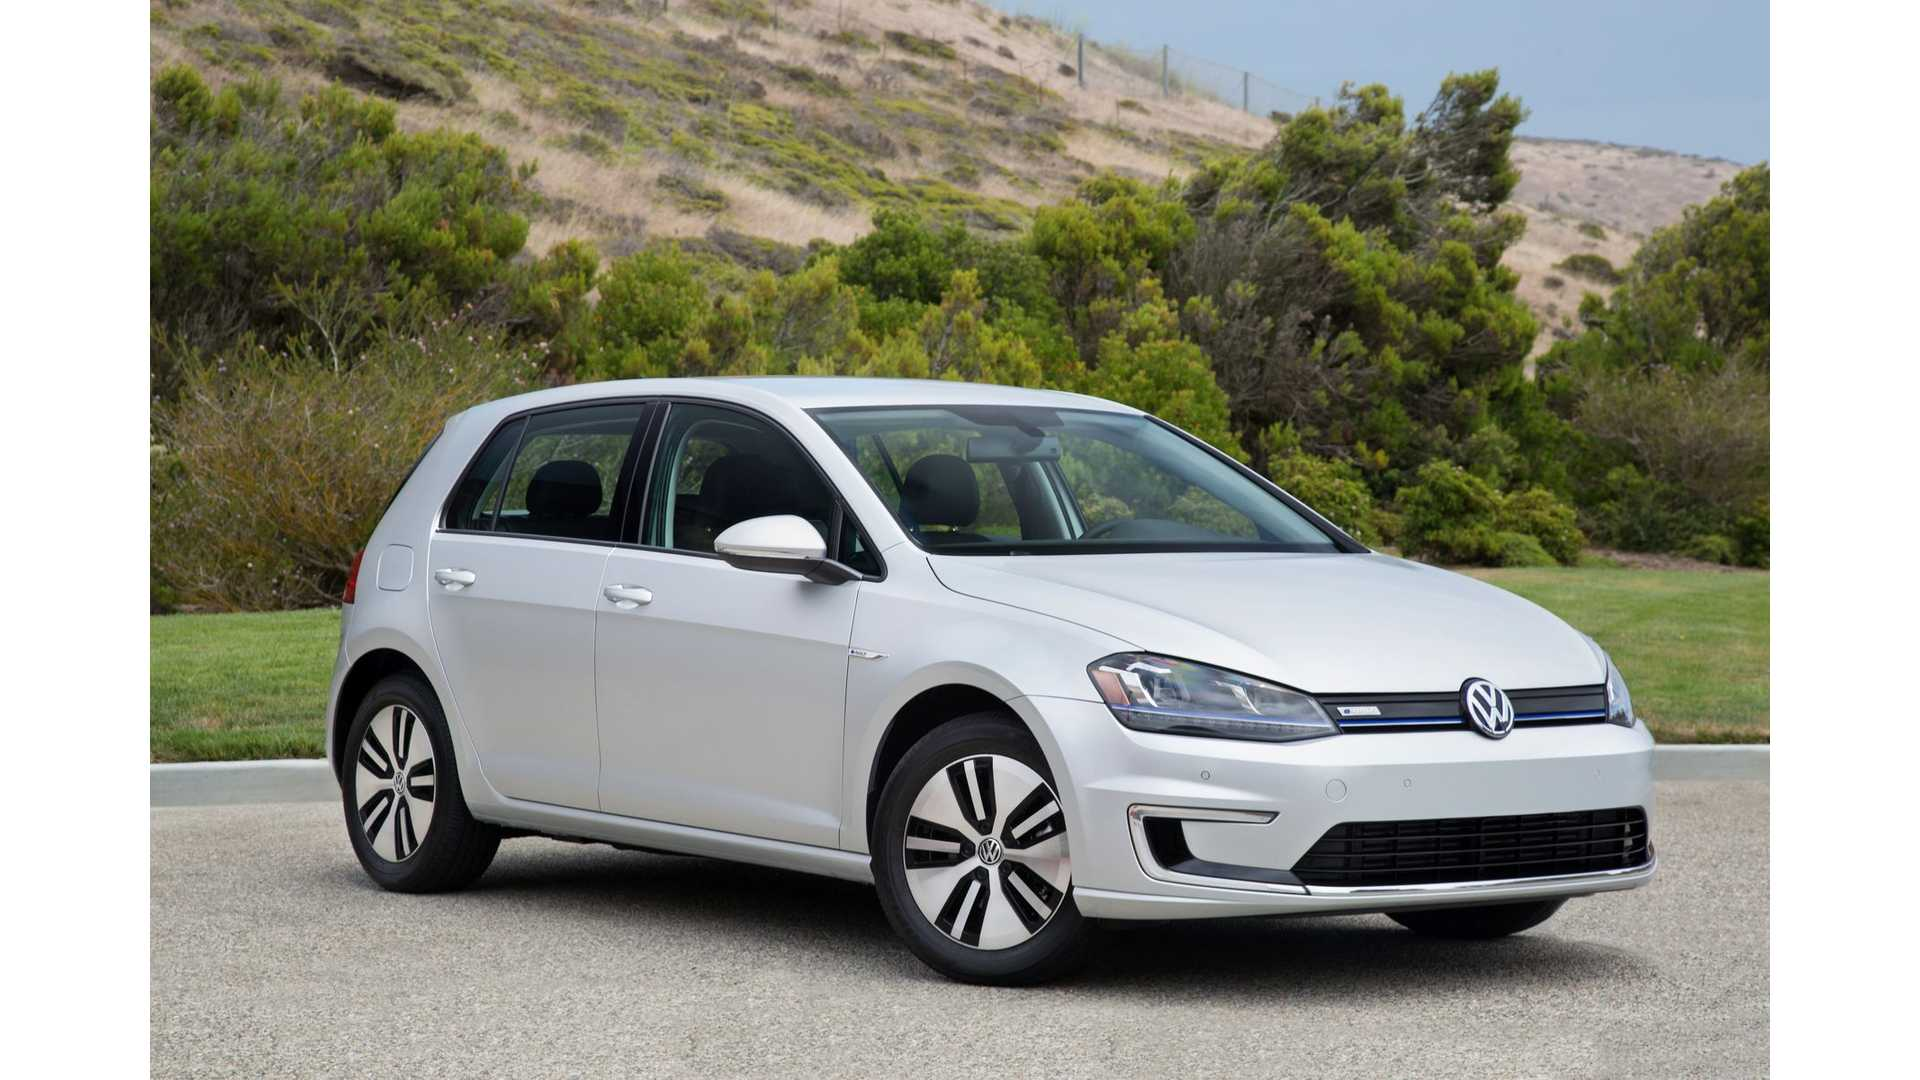 Tesla Model S Volkswagen E Golf And Bmw I3 Selected In 2016 Aaa Green Car Guide